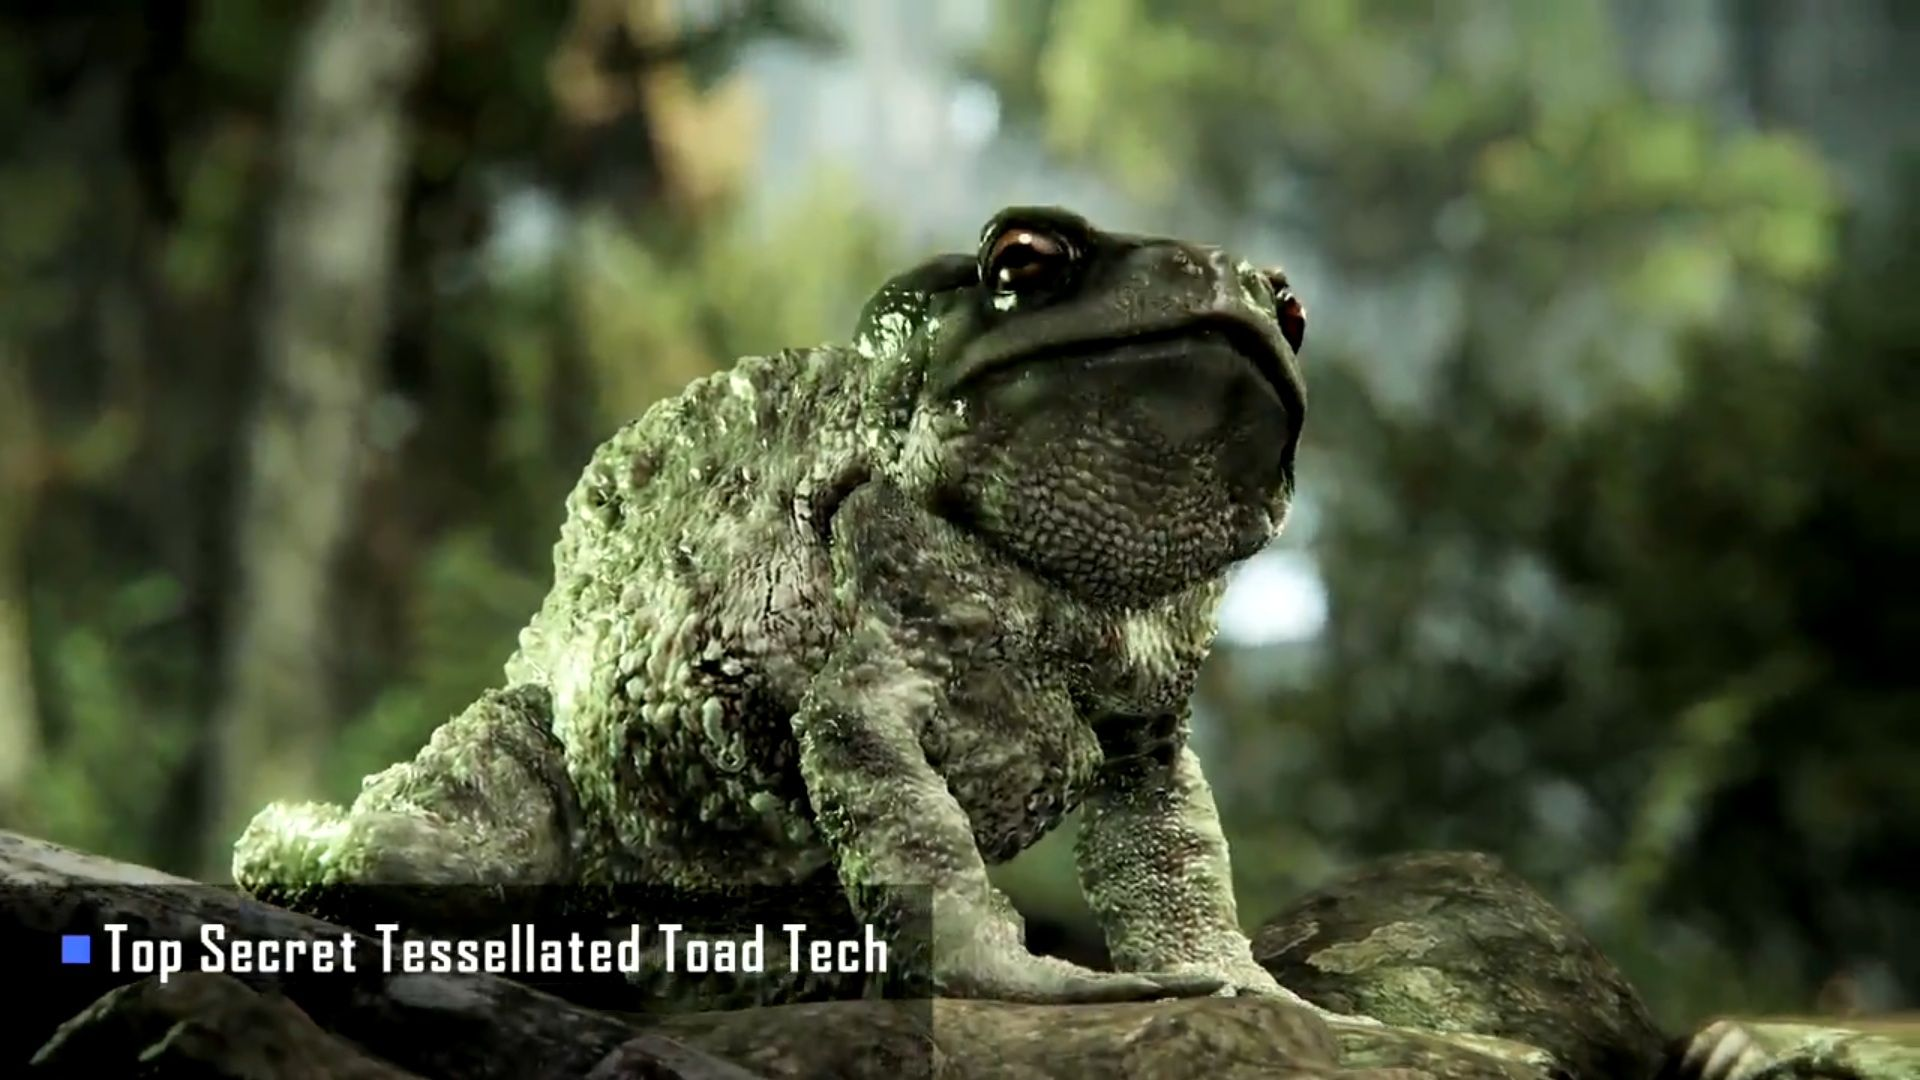 Crysis 3 Cry Engine 3 Tech Trailer Boasts Top -secret